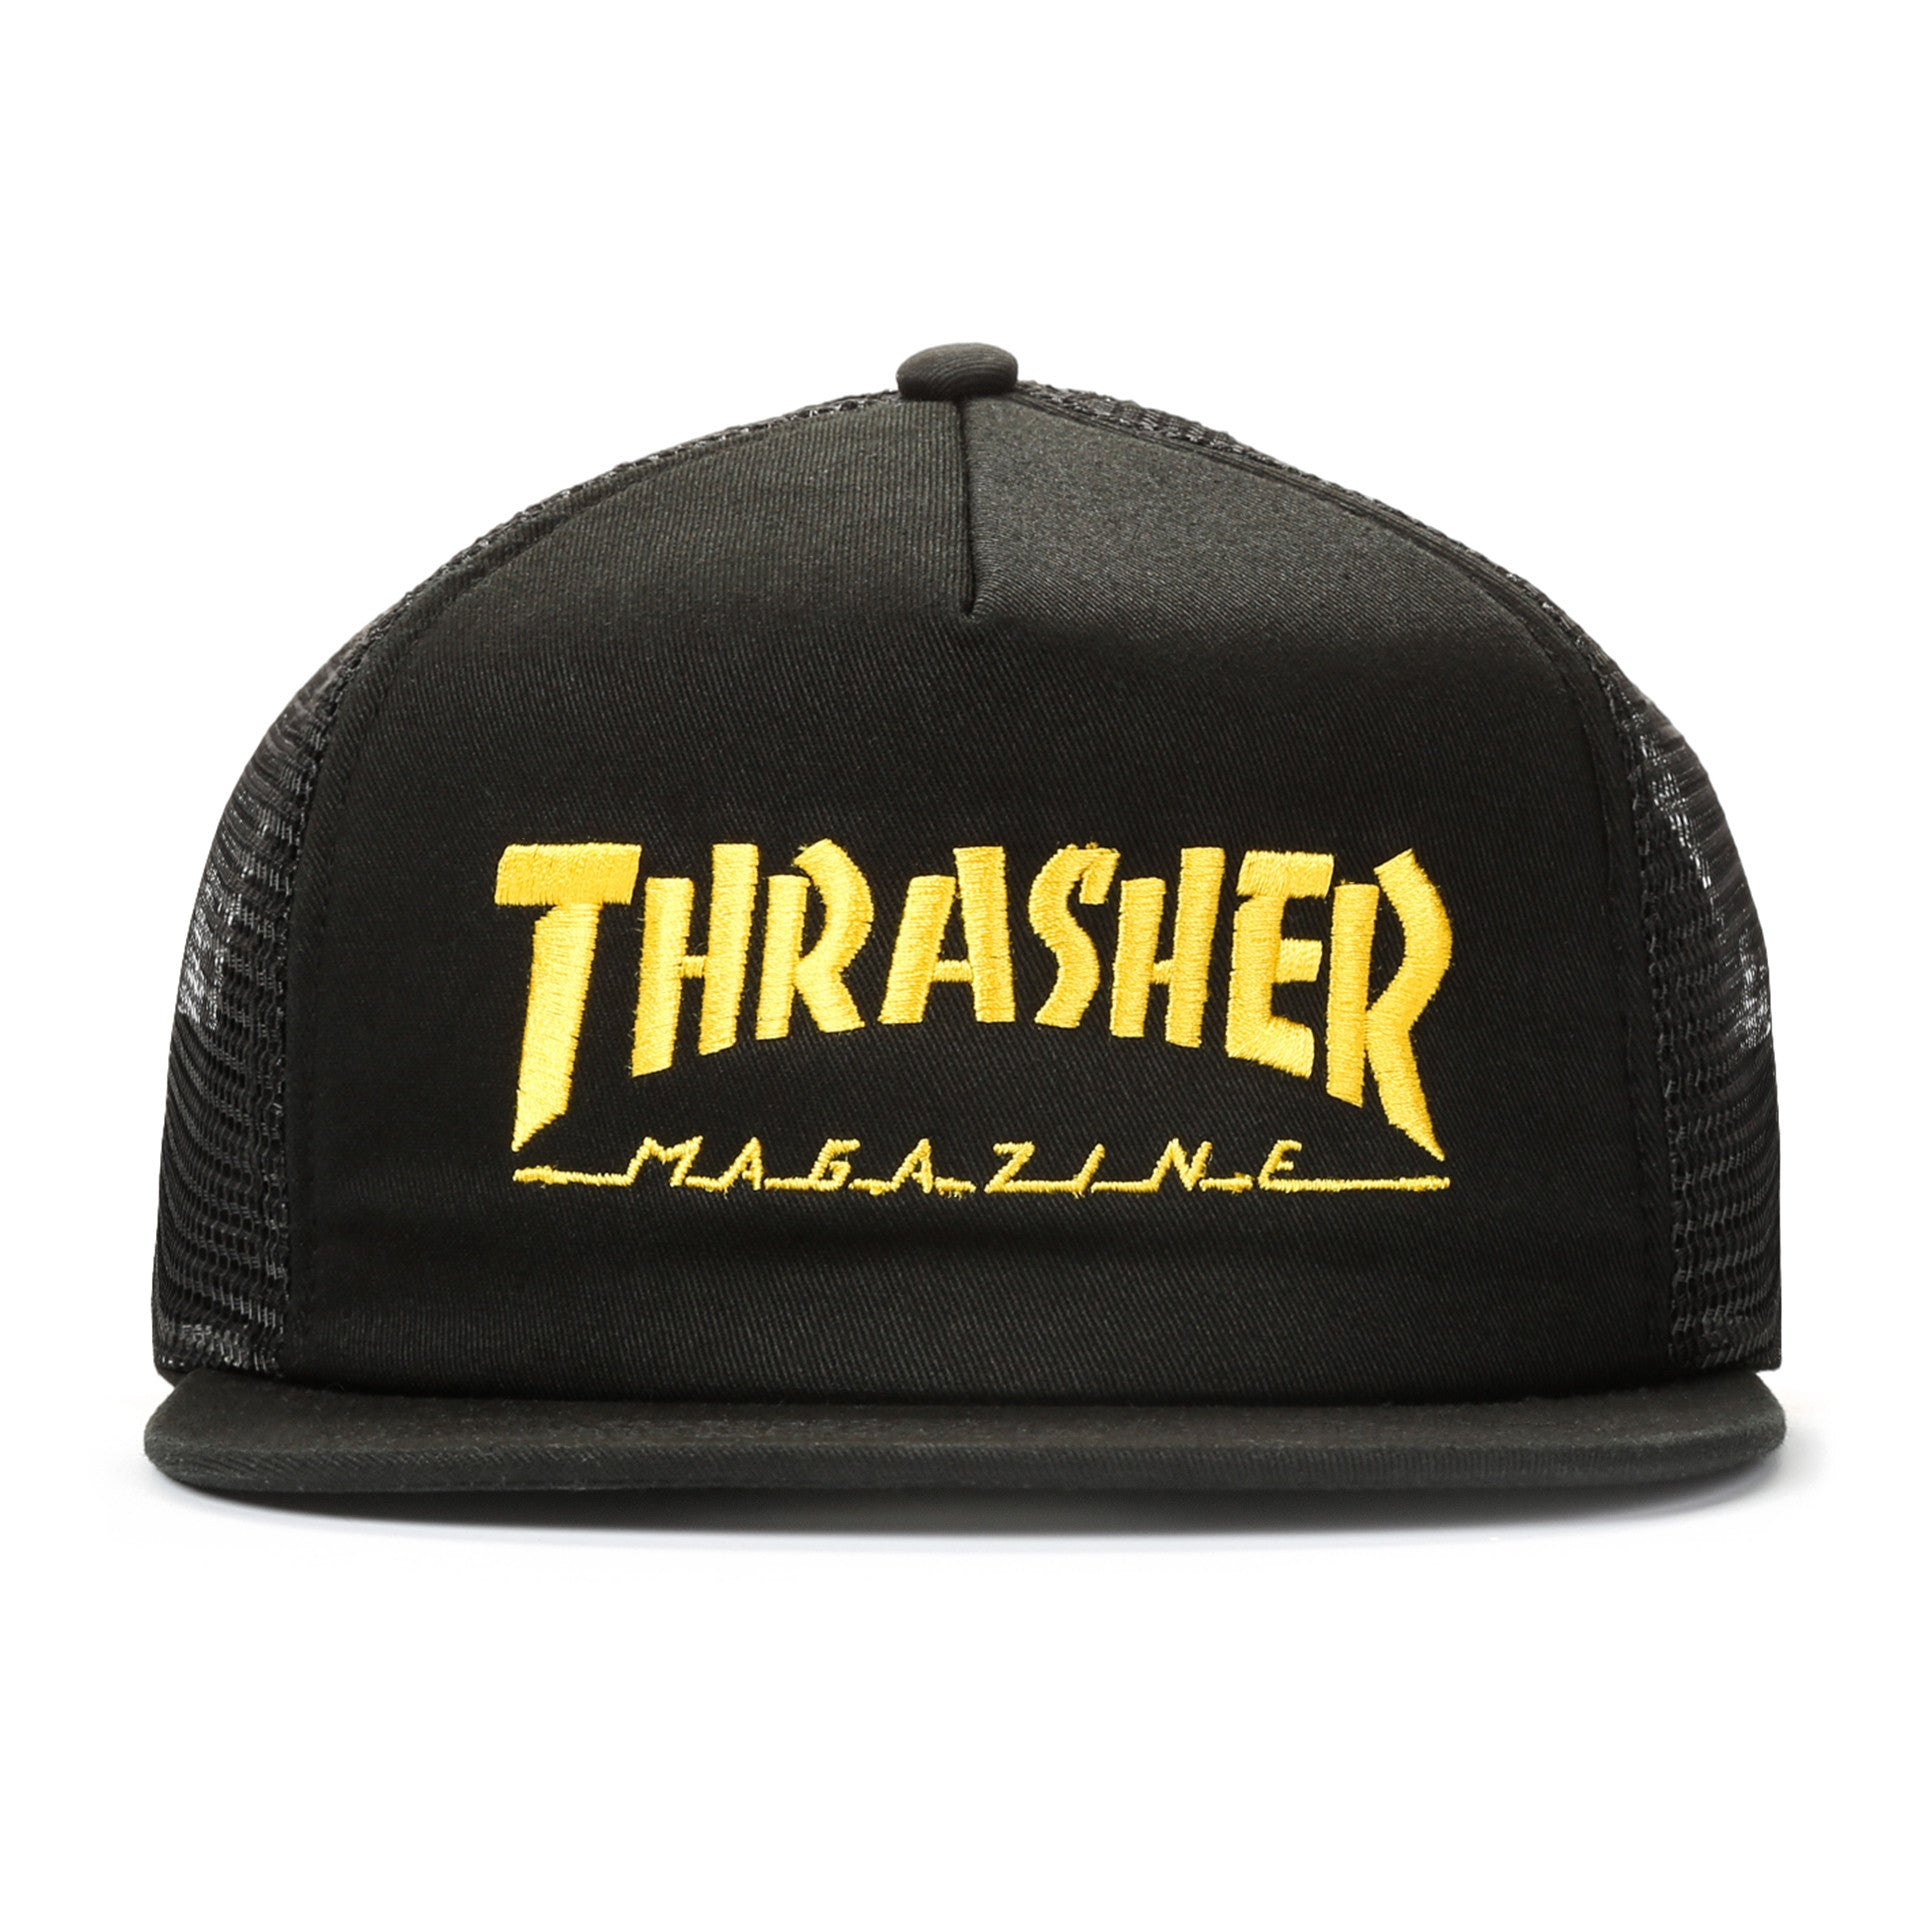 7b8903f8a12 Thrasher Embroidered Logo Mesh Cap - Black Yellow - New Star